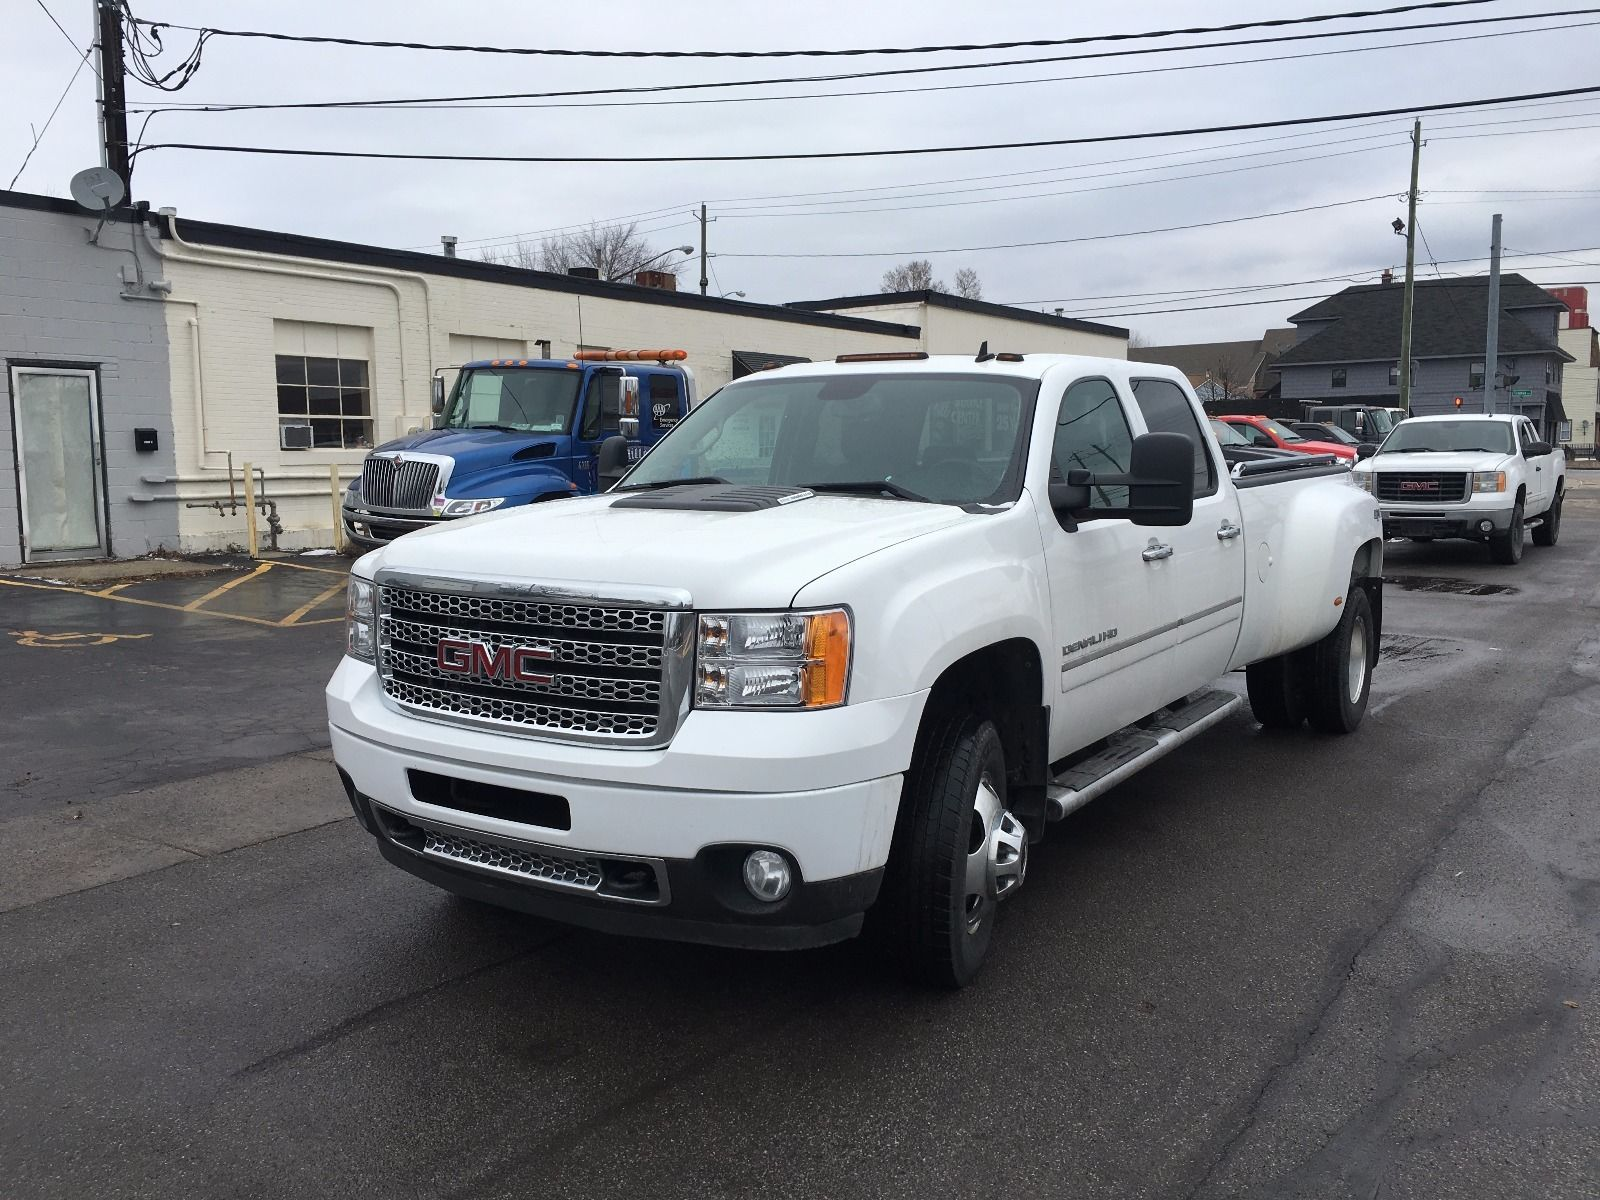 2013 gmc sierra denali 3500 4 4 crew cab dually diesel for sale. Black Bedroom Furniture Sets. Home Design Ideas